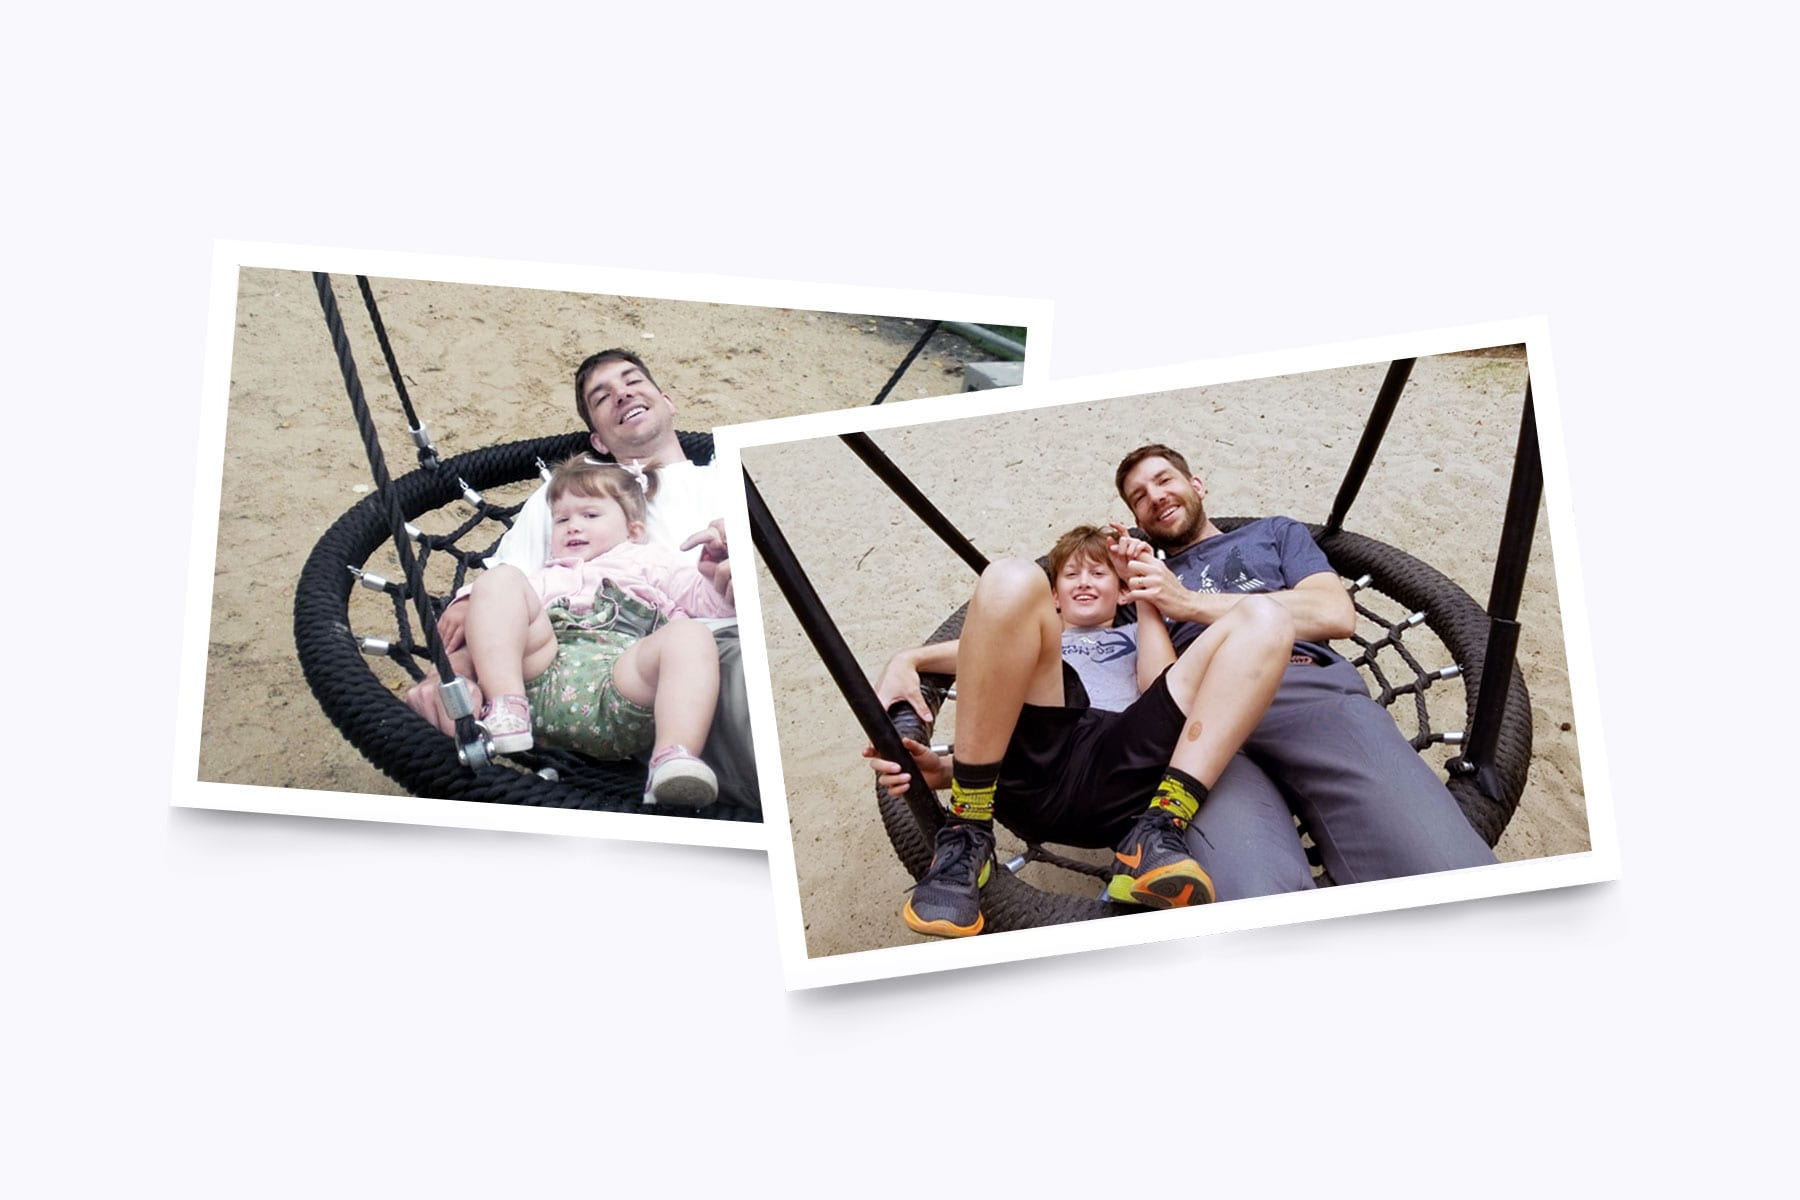 Before and after images of a father and son on a swing